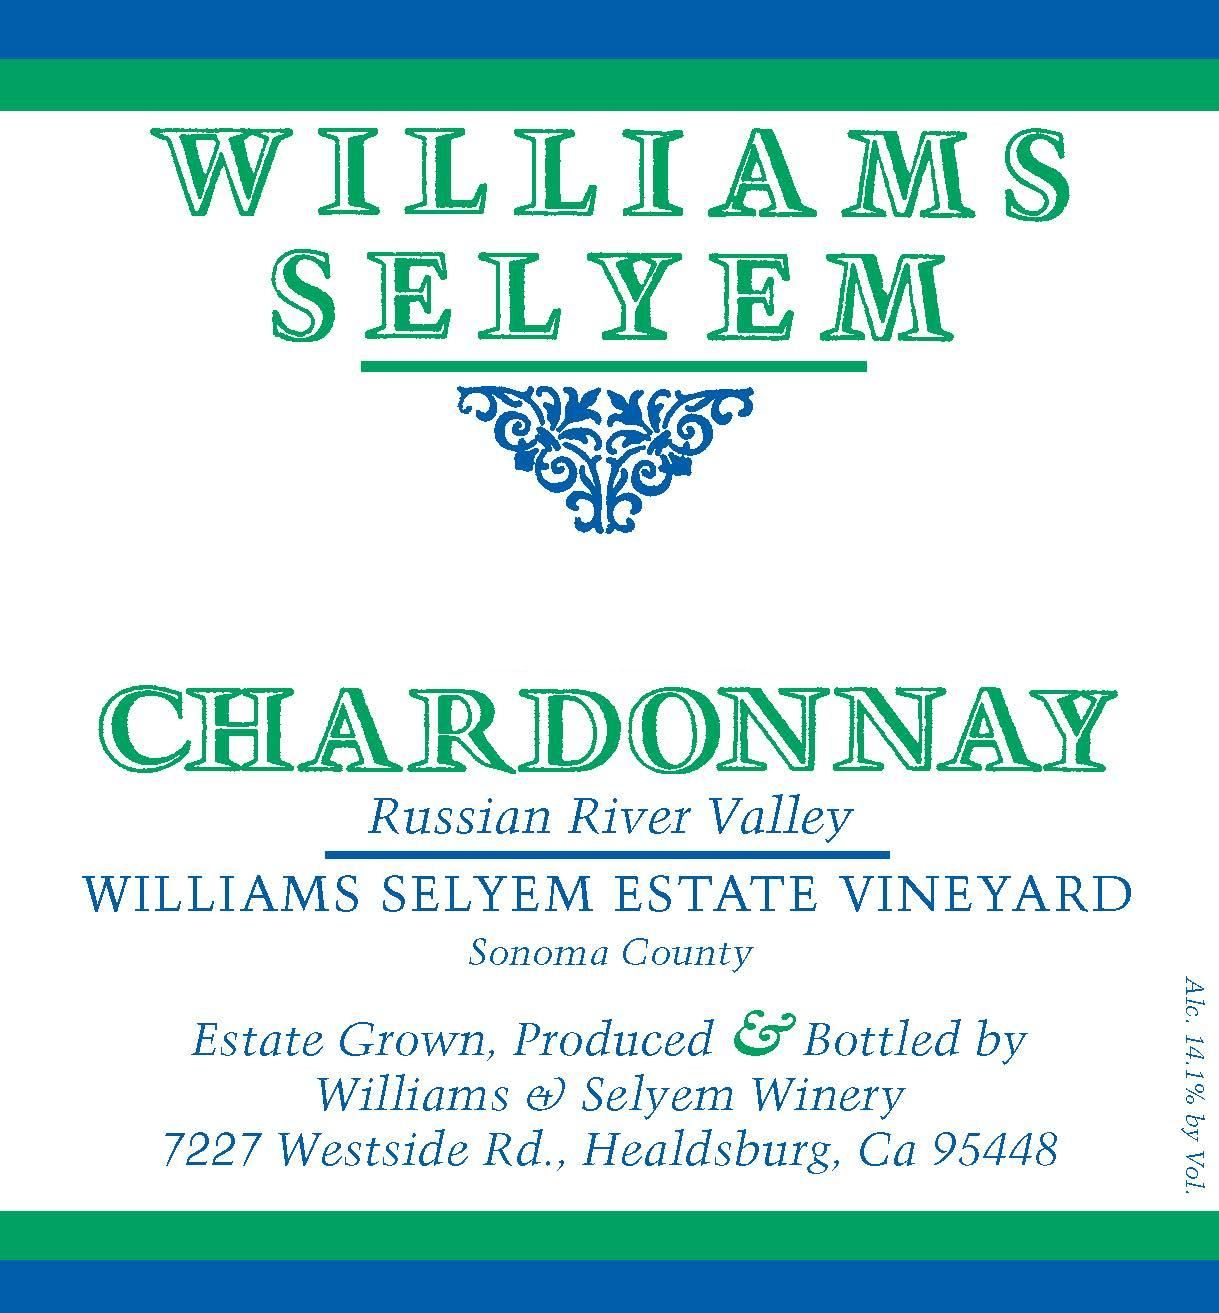 Williams Selyem Estate Vineyard Chardonnay 2017  Front Label